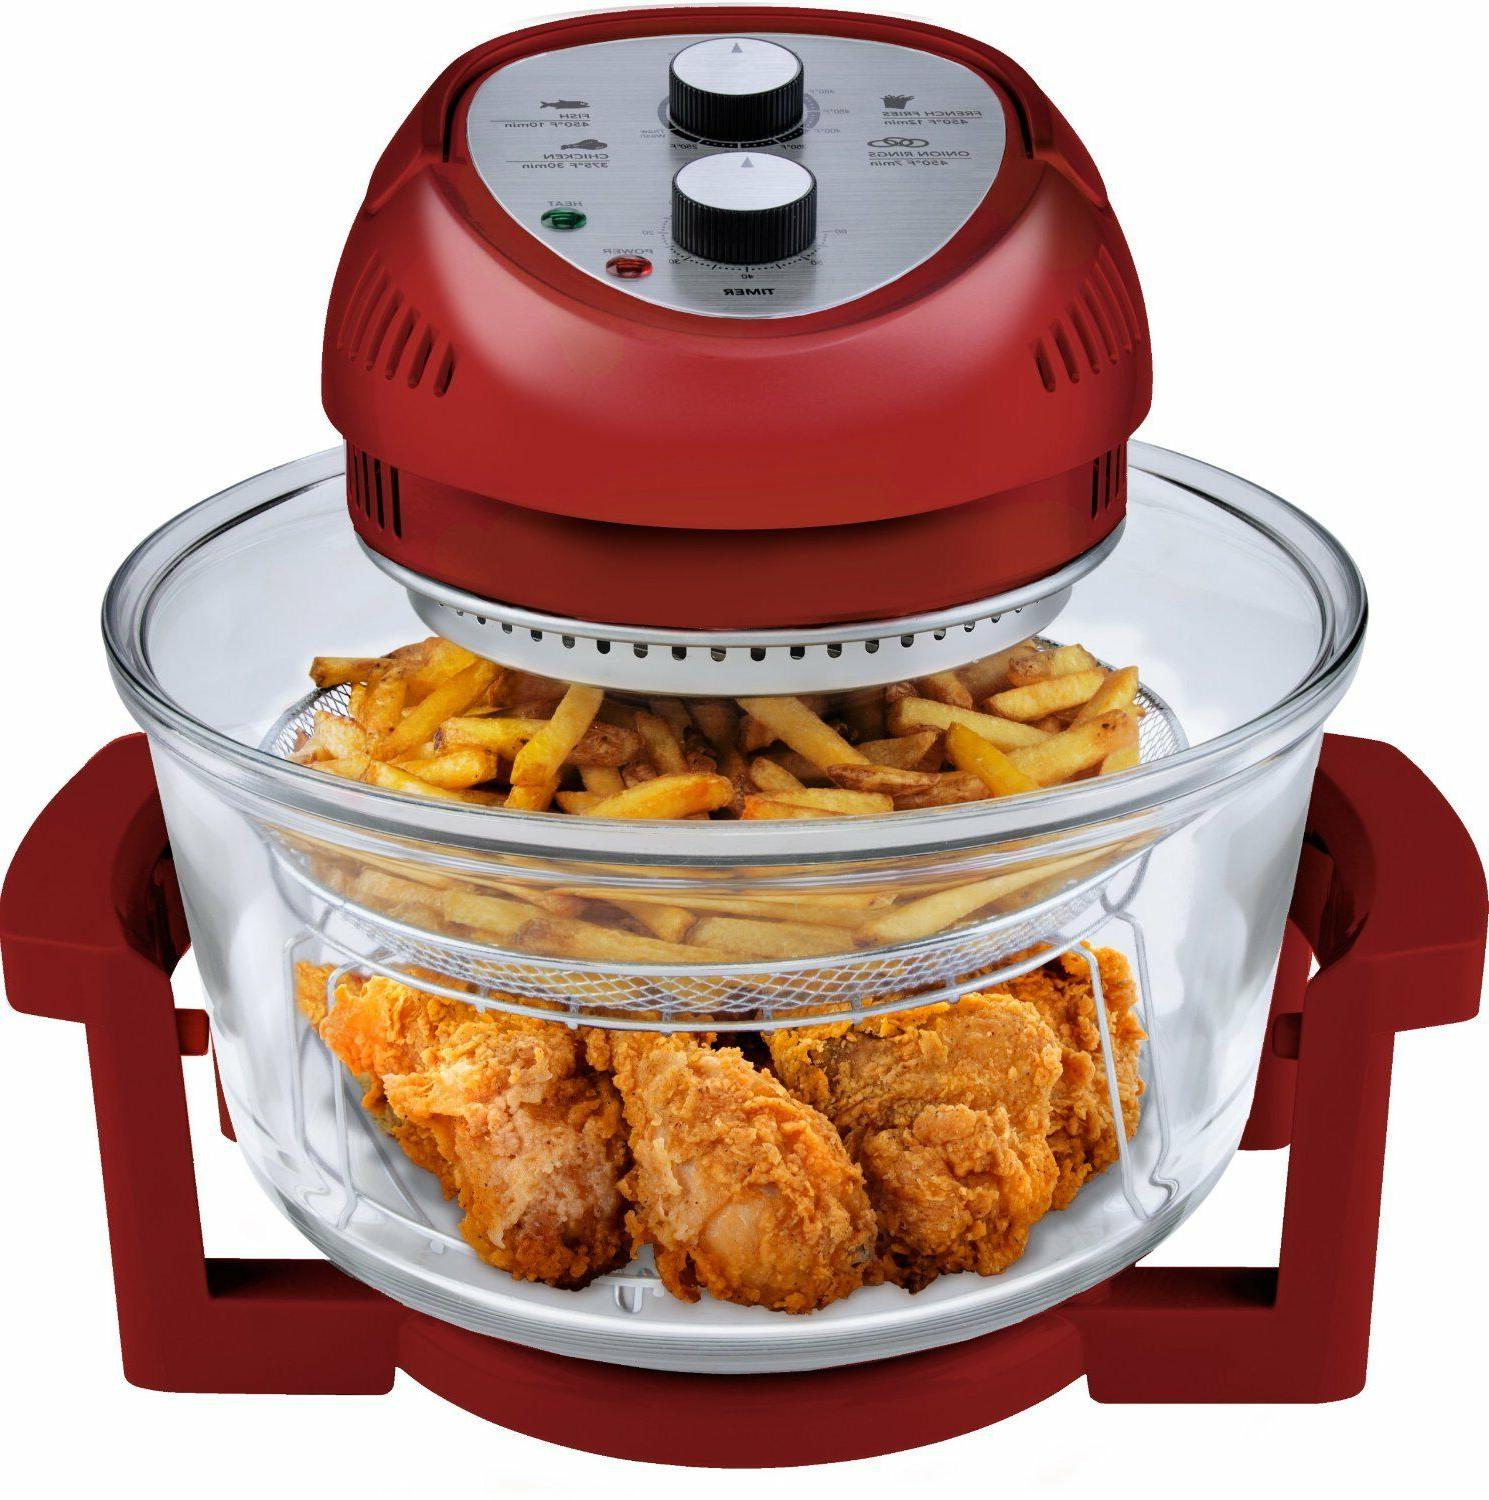 air fryer 1300 watt 16 quart red